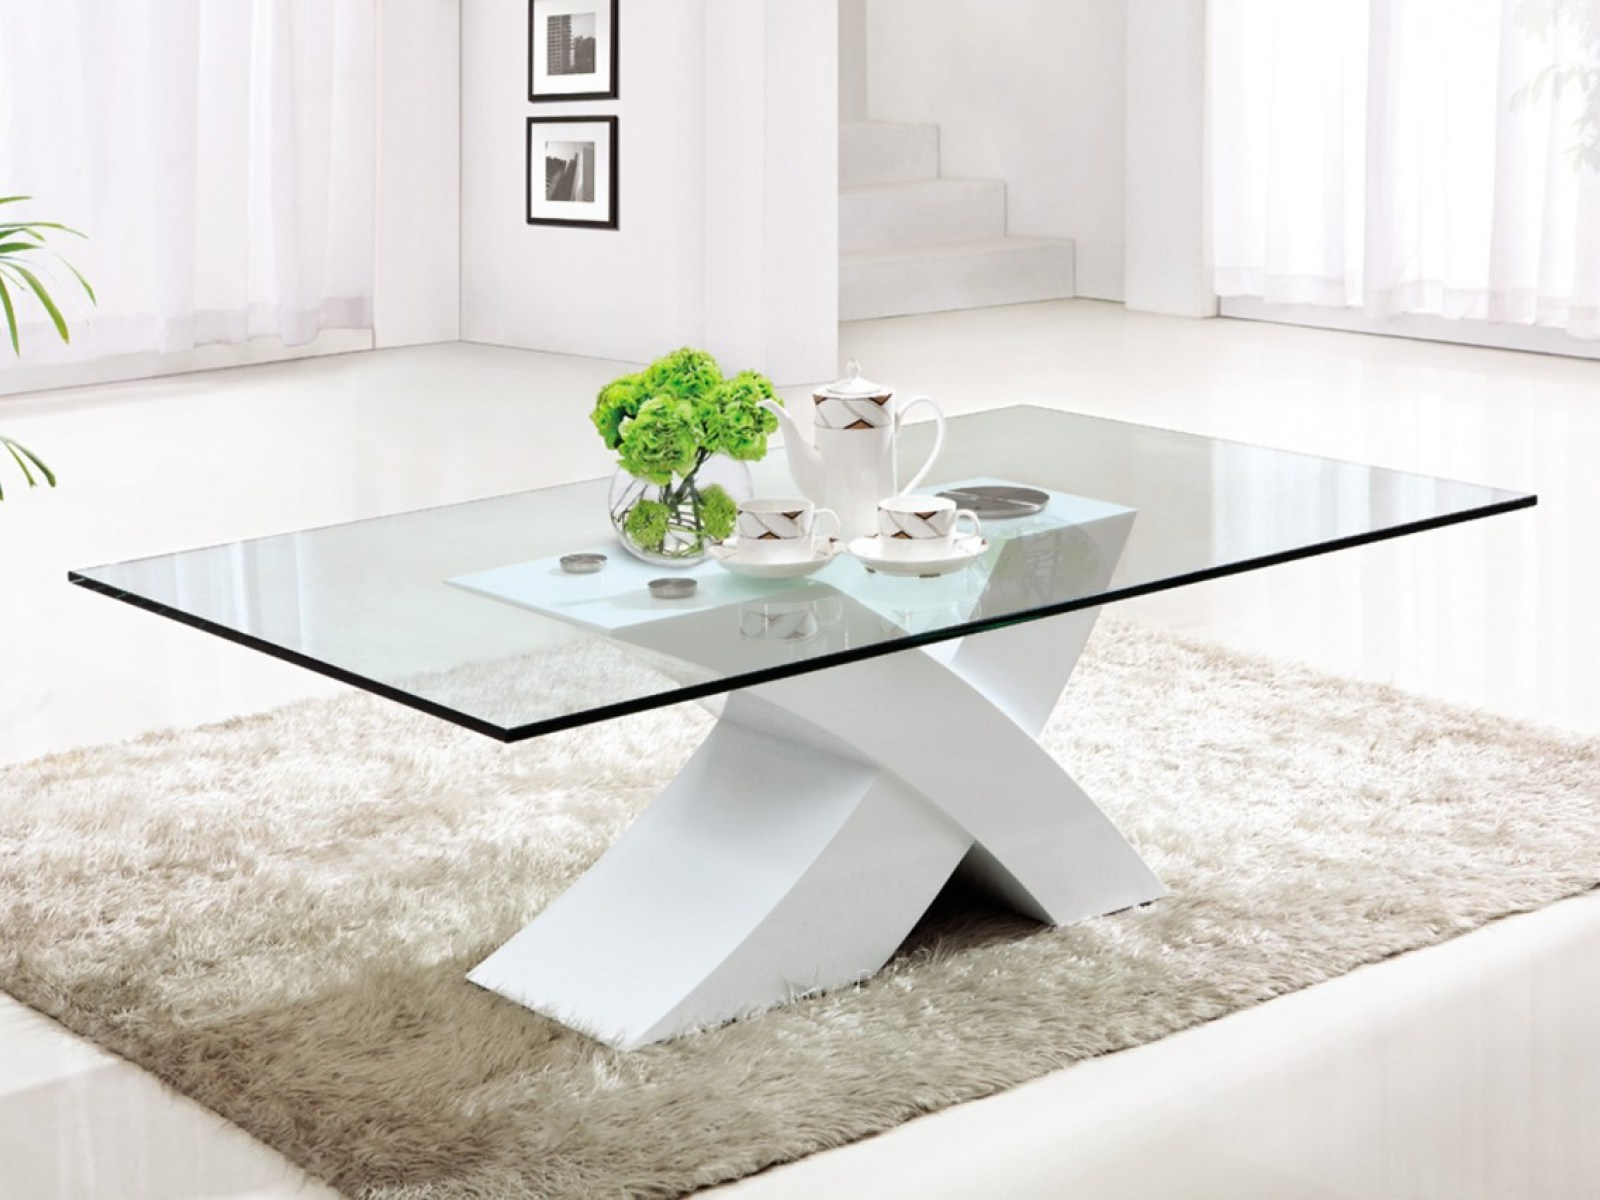 Acrylic Coffee Table Ikea with Clear View